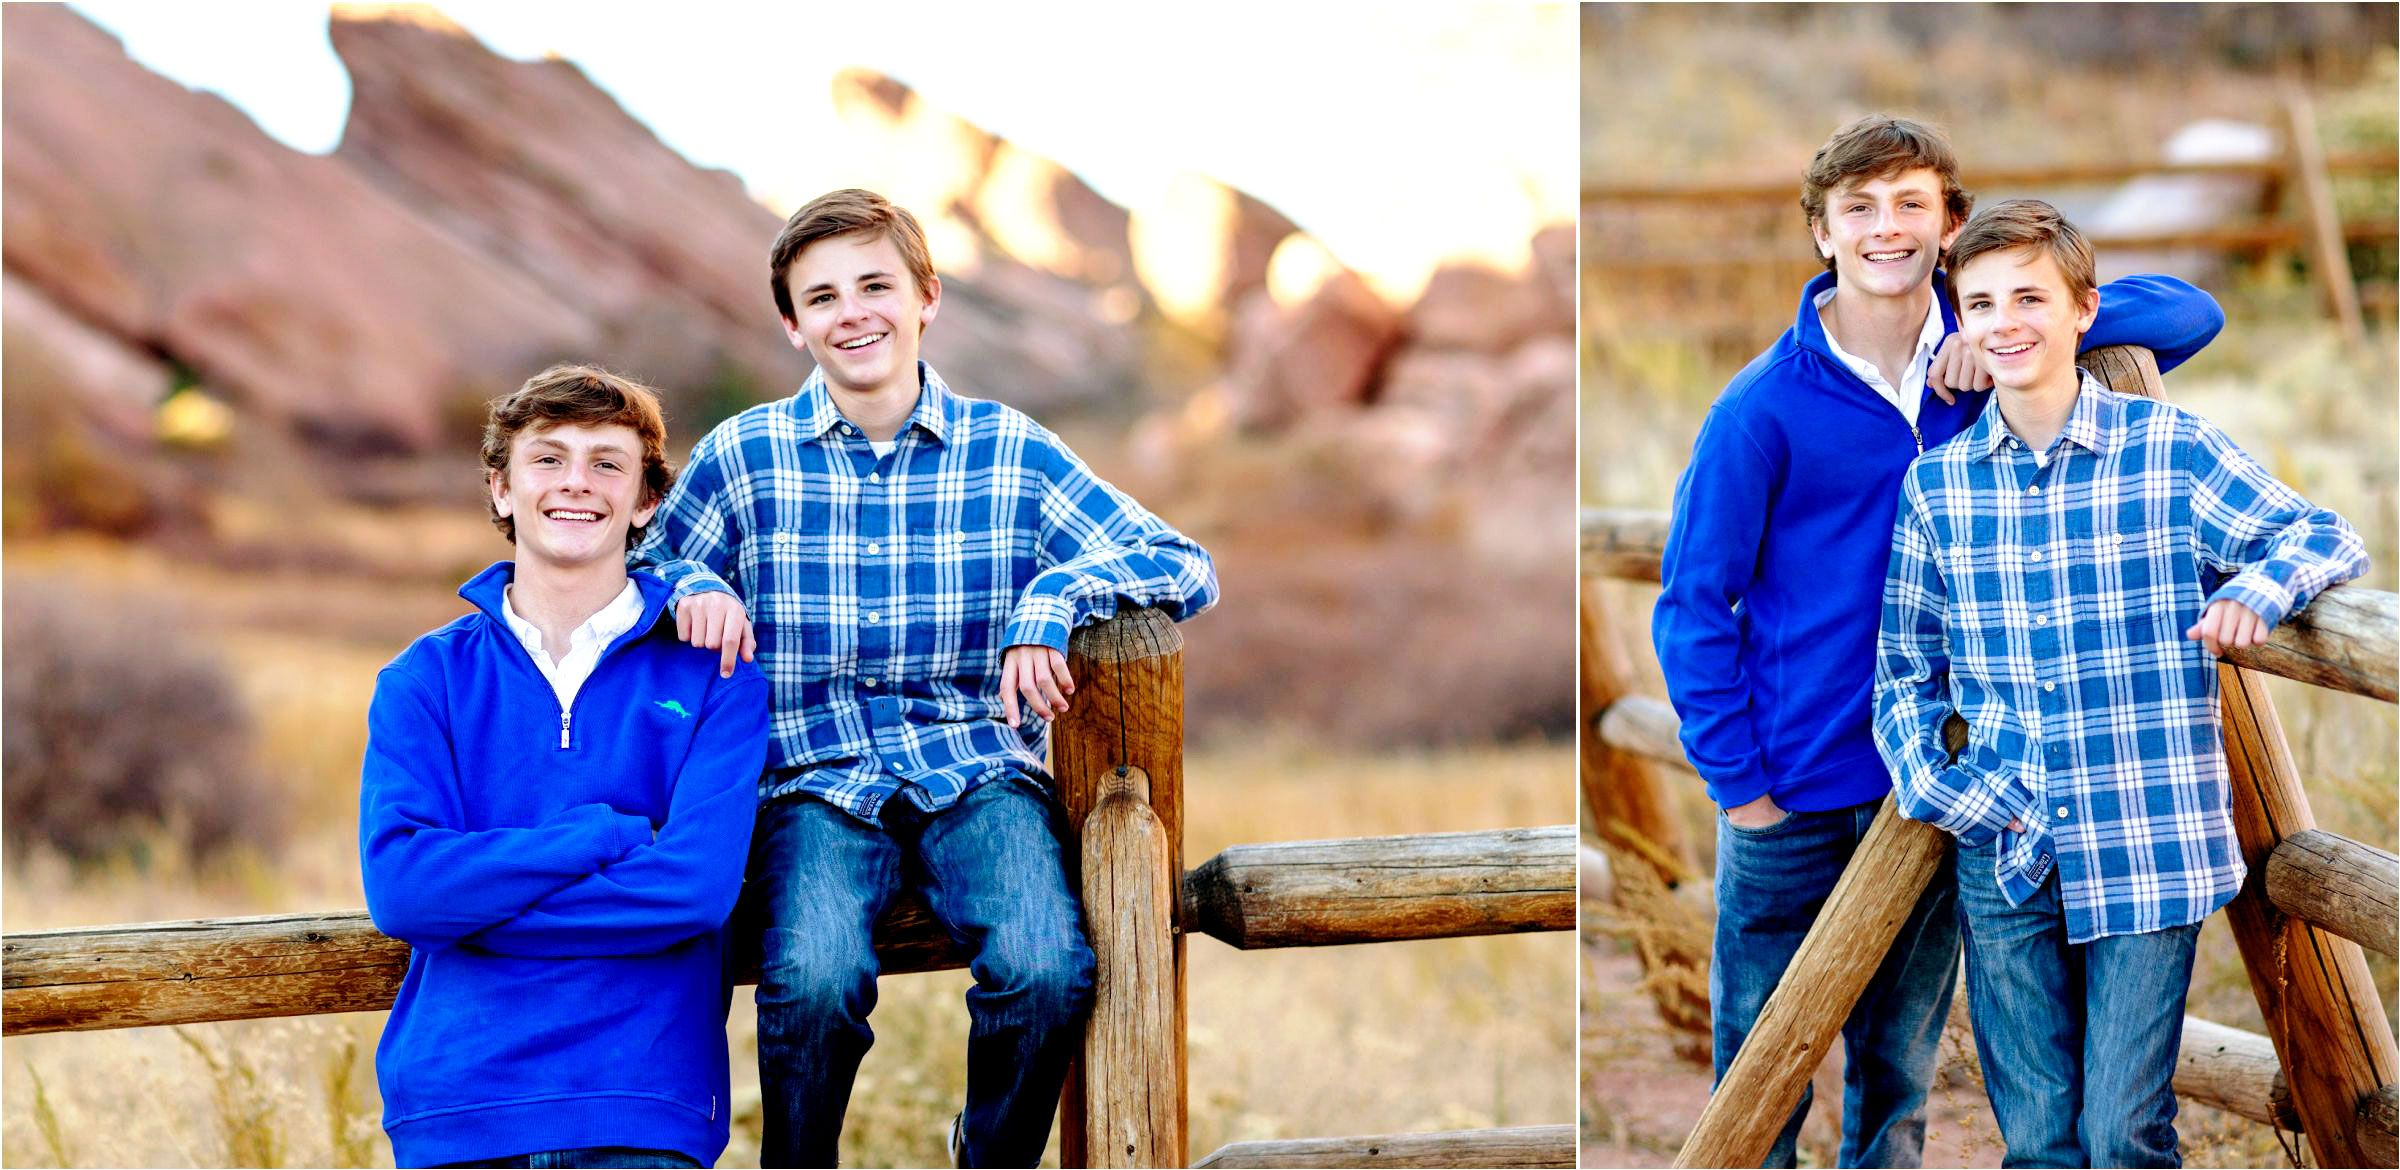 brothers-use-a-fence-to-model-at-red-rocks-photo-shoot-002